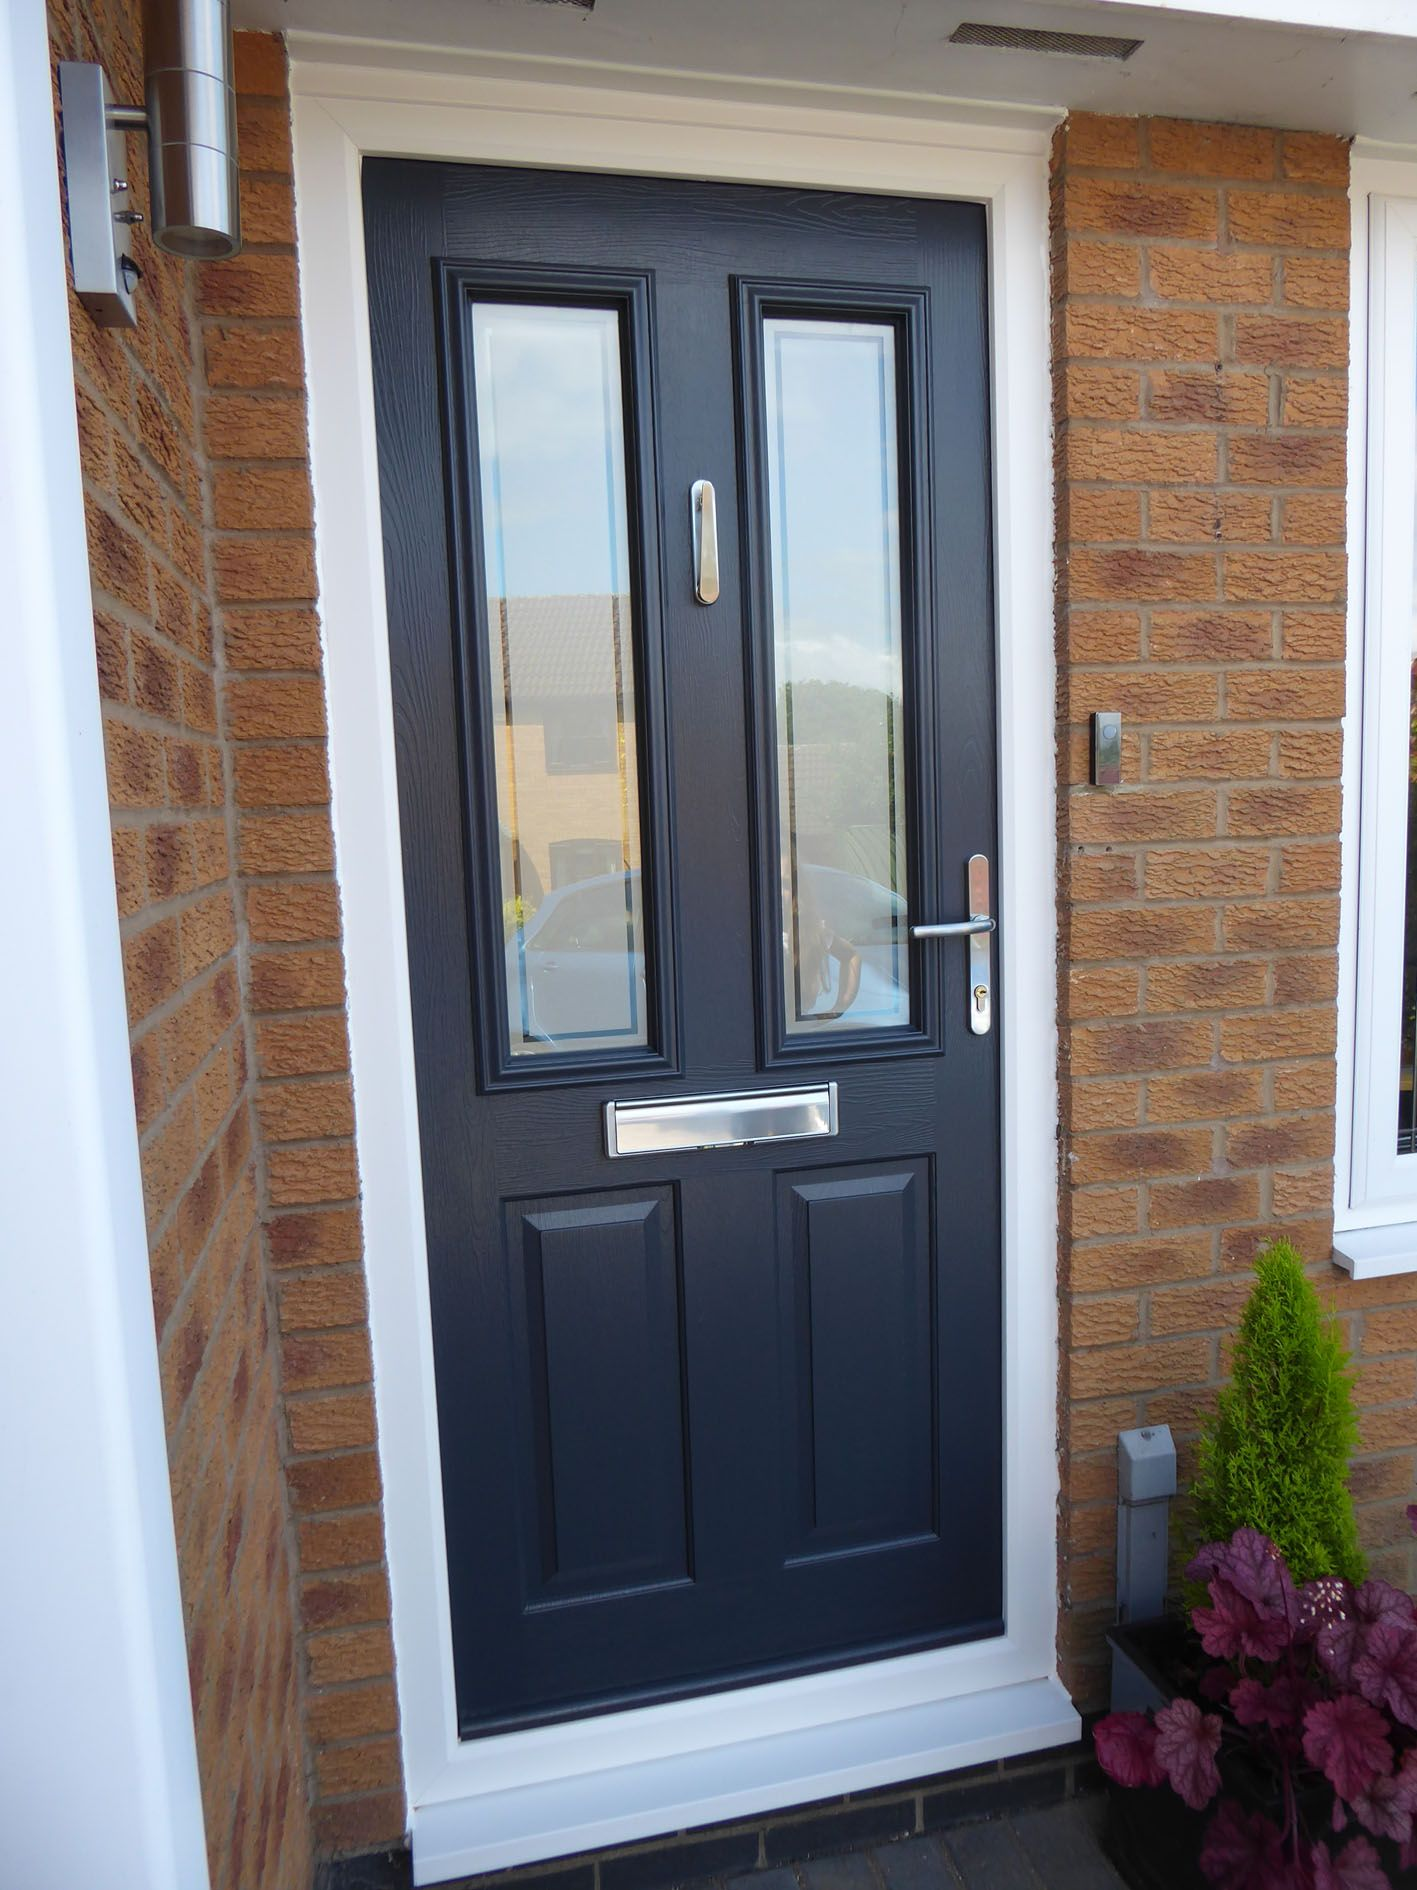 New Anthracite Grey Ludlow Solidor door #victorianfrontdoors